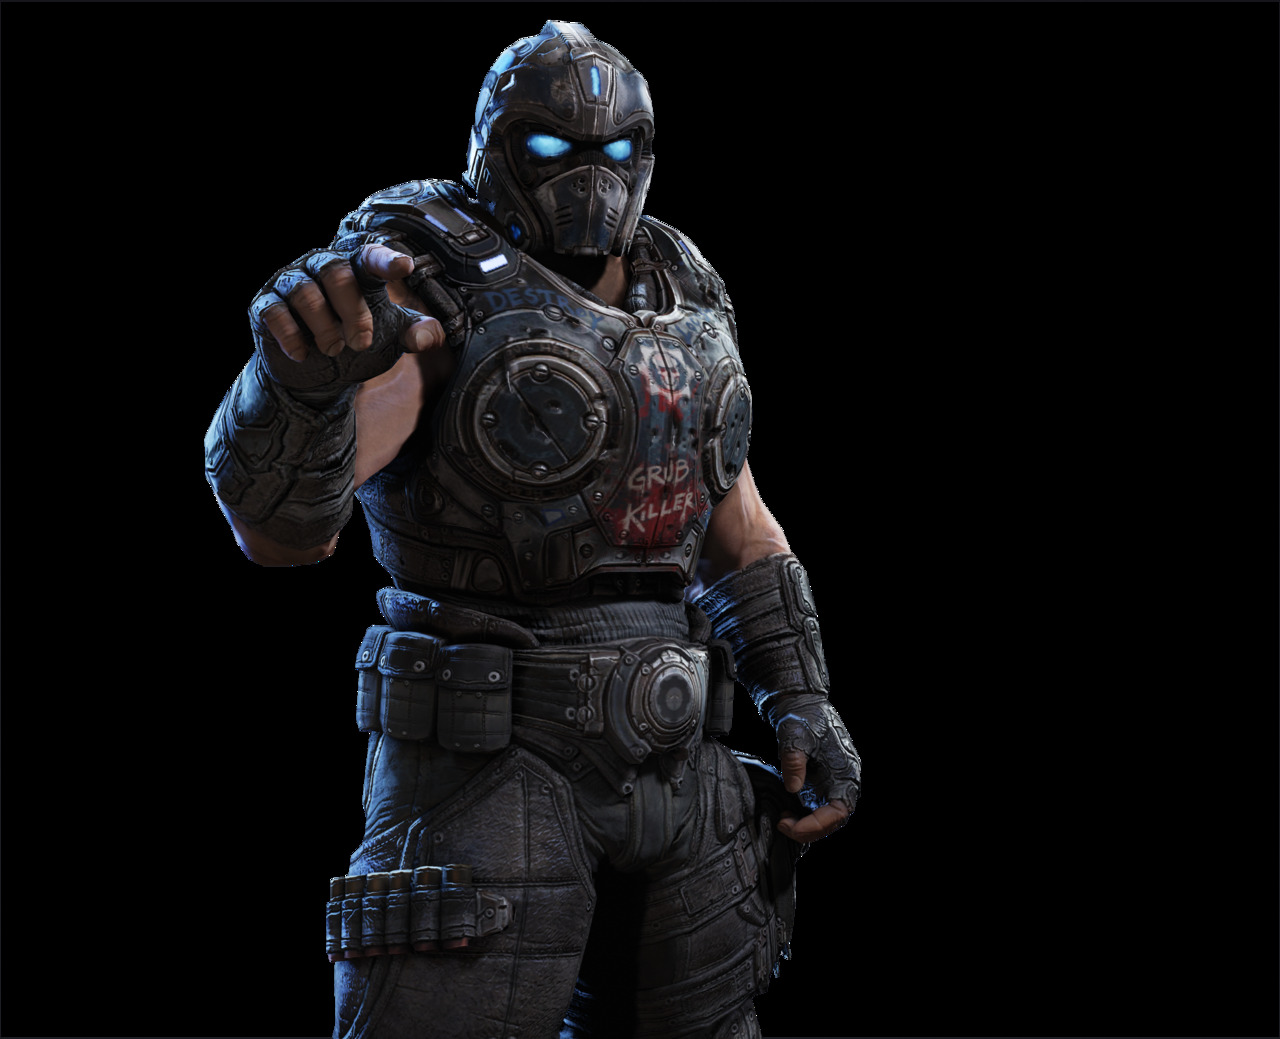 Artworky a screenshoty z Gears of War 3 44669